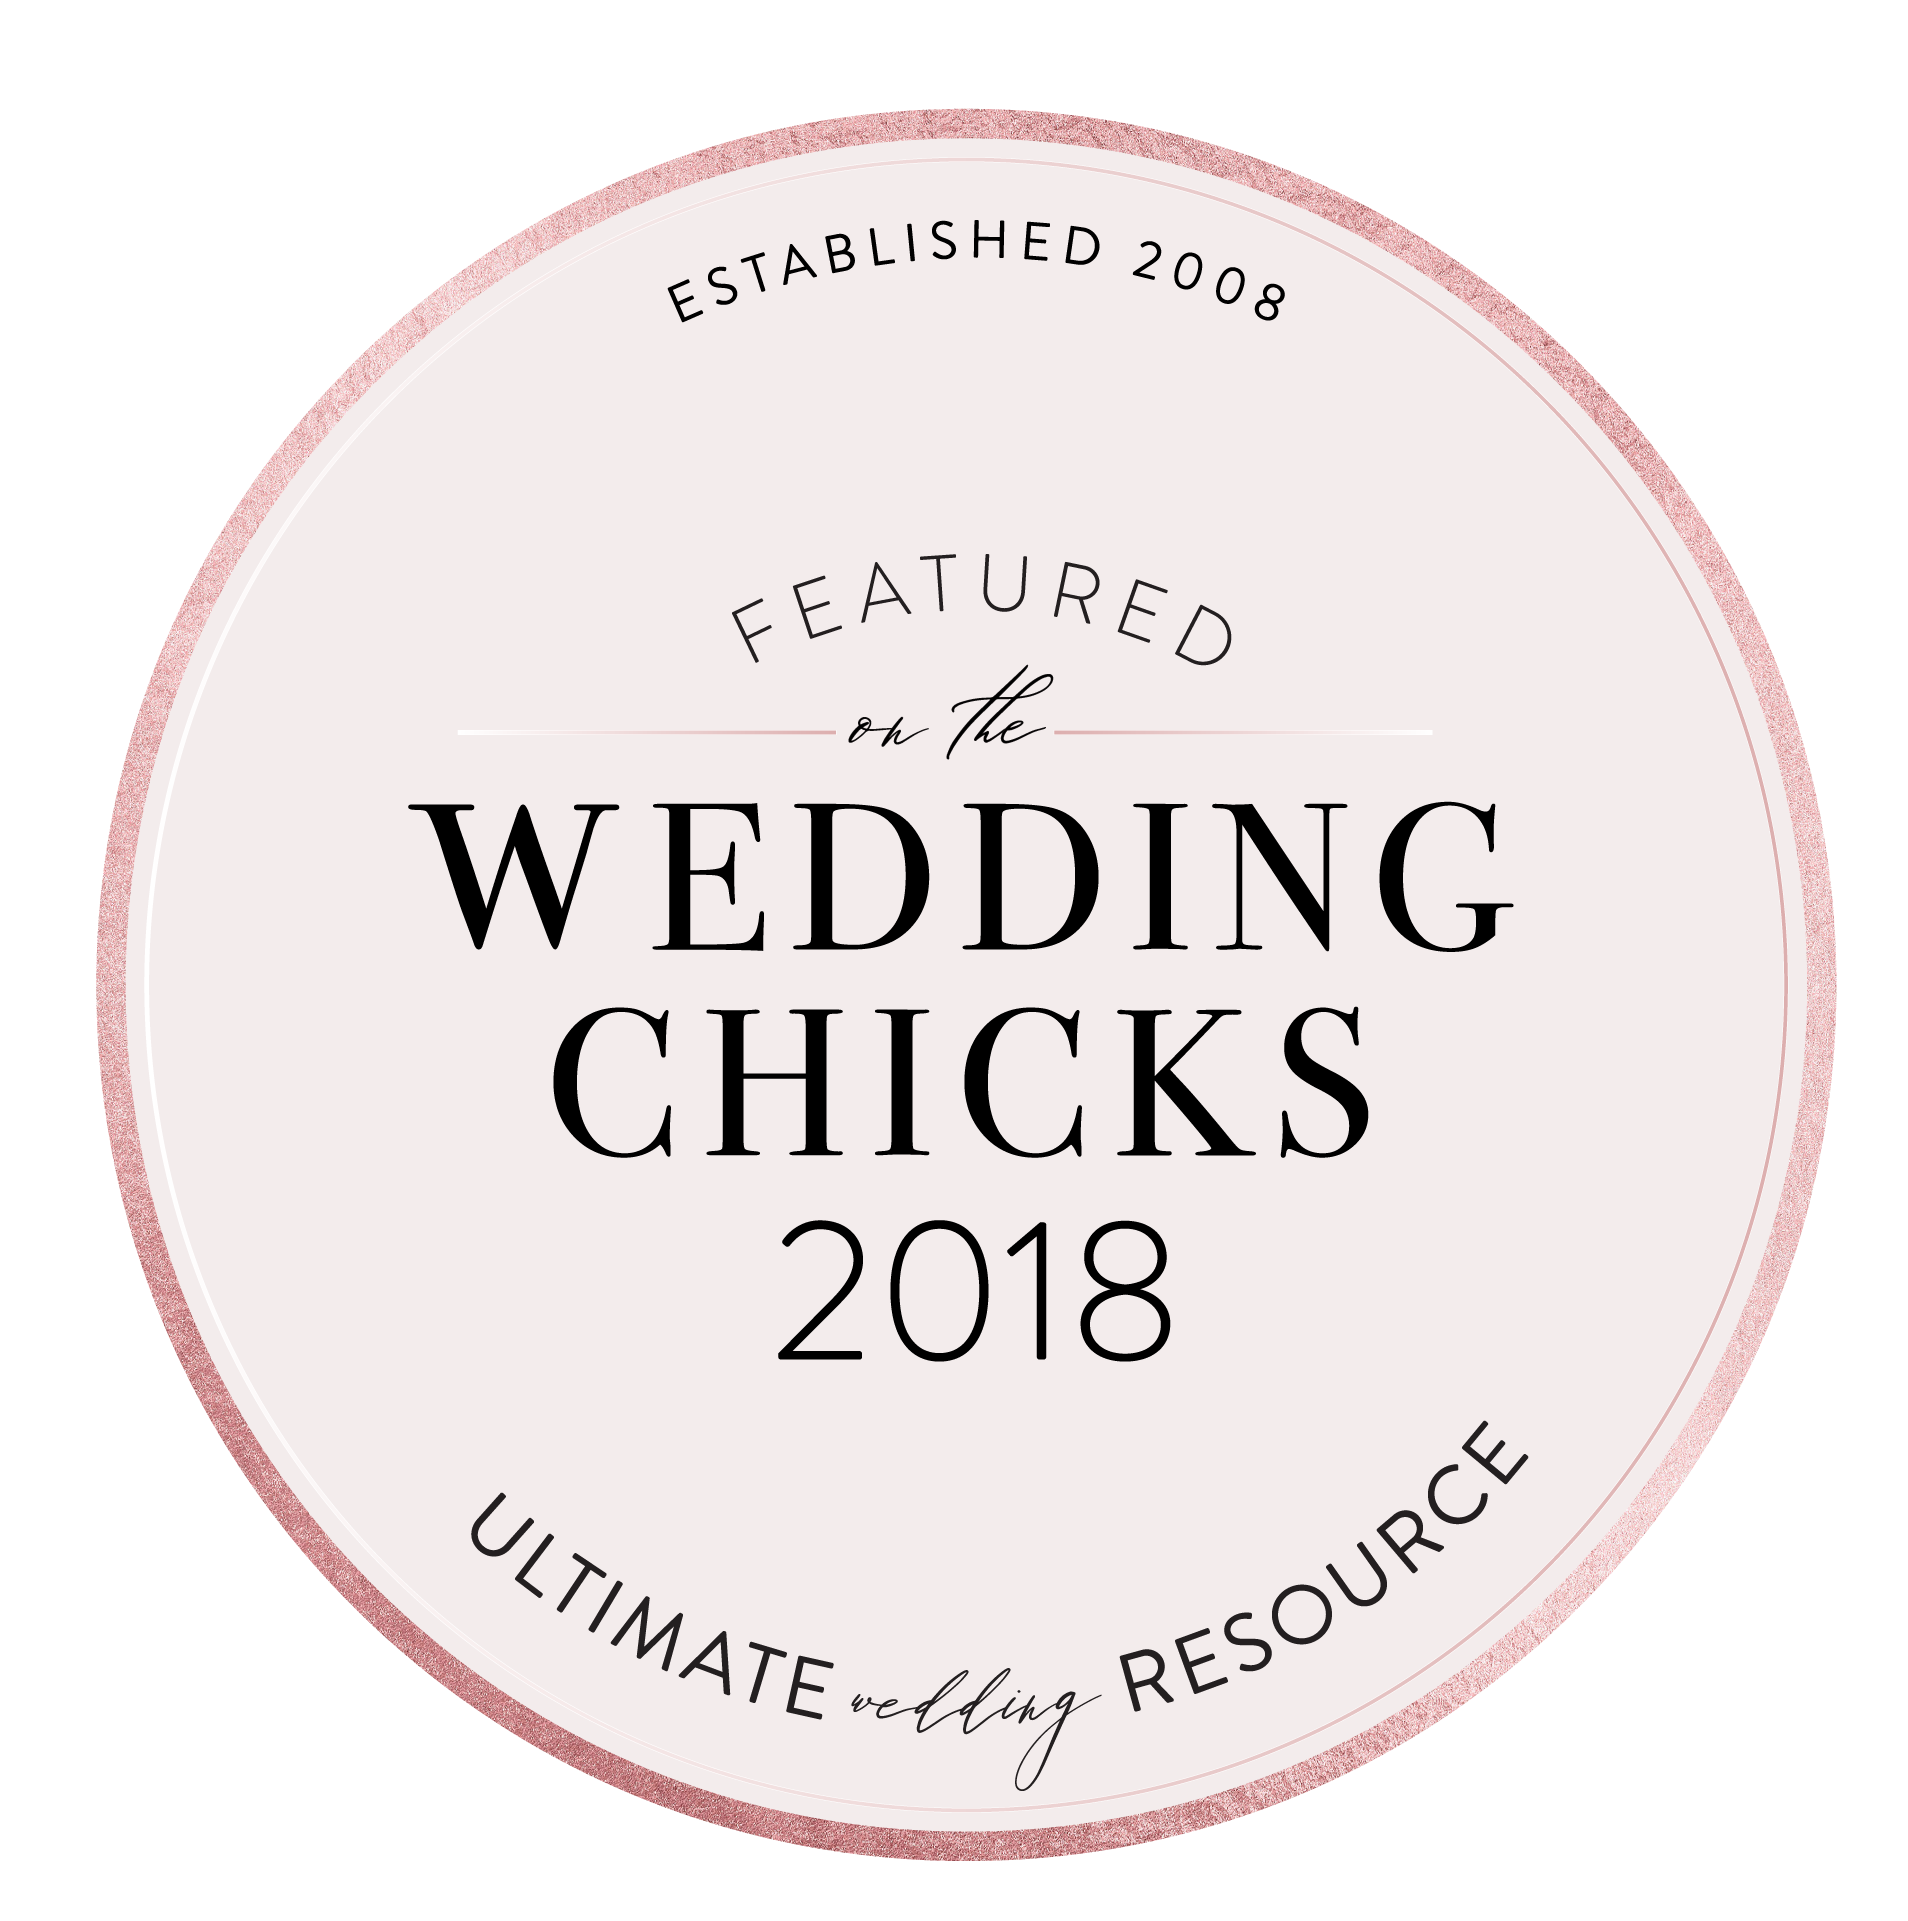 Wedding Chicks Feature Winter Styled Photoshoot